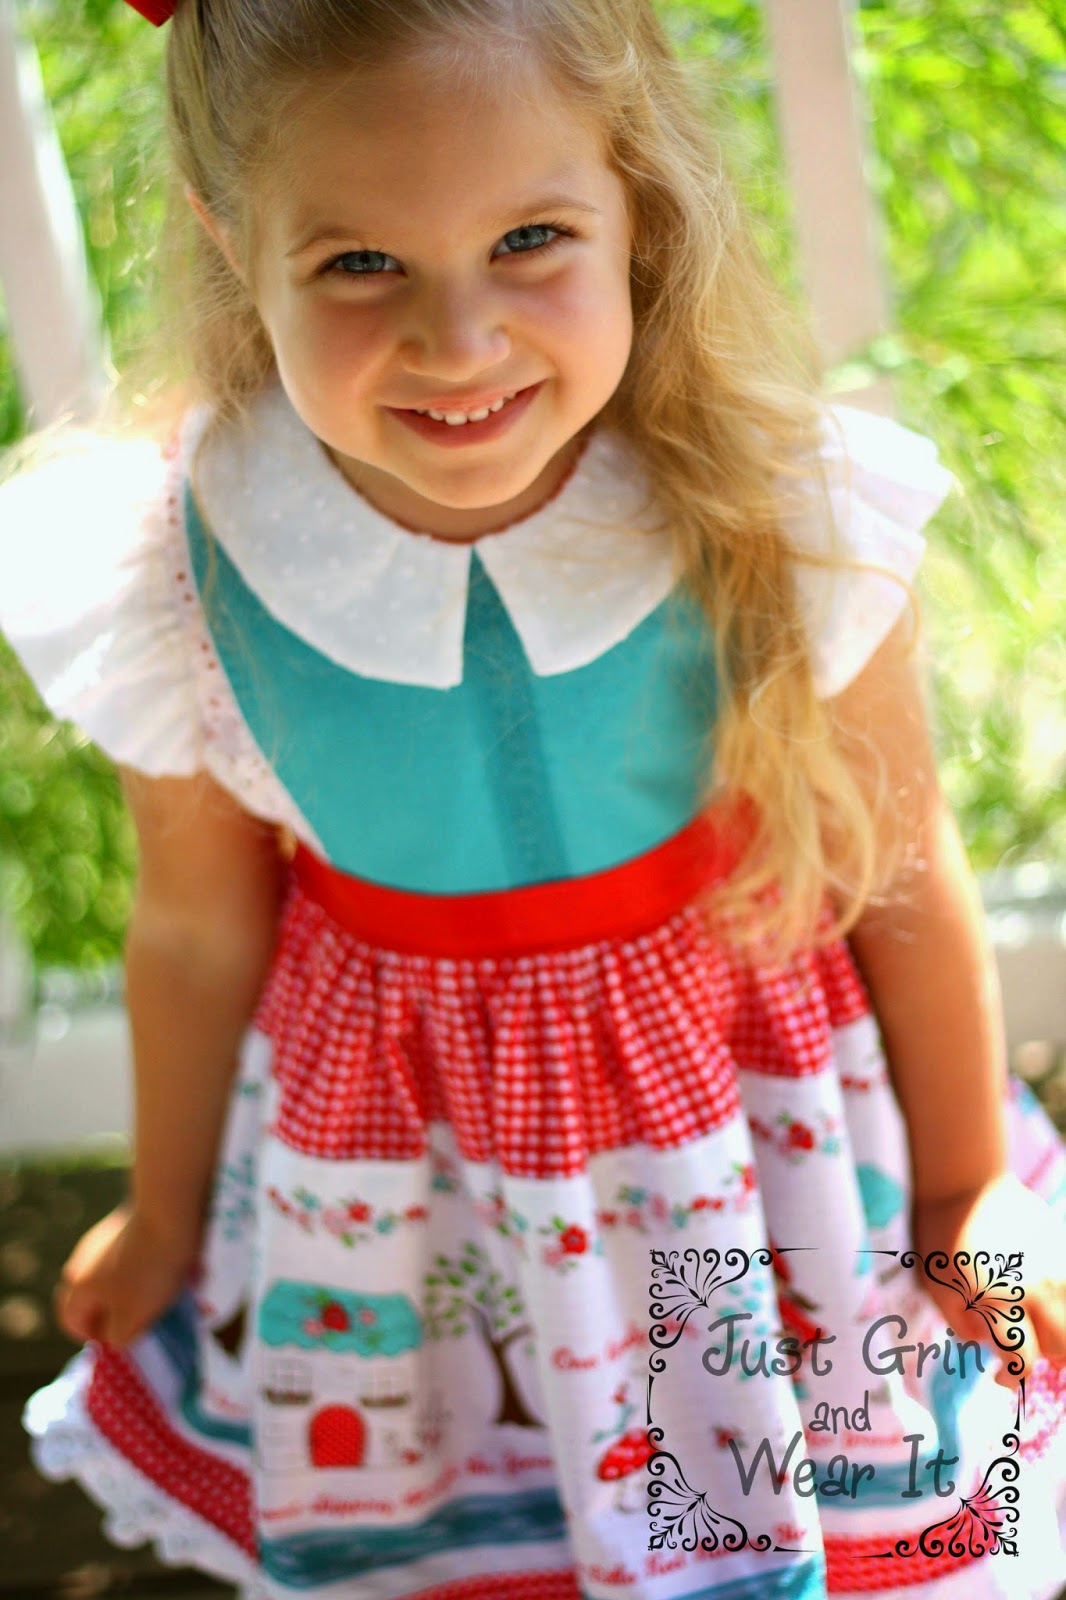 Georgia Vintage Dress Pattern Review- See my Red Riding Hood Version | www.justgrinandwearit.blogspot.com